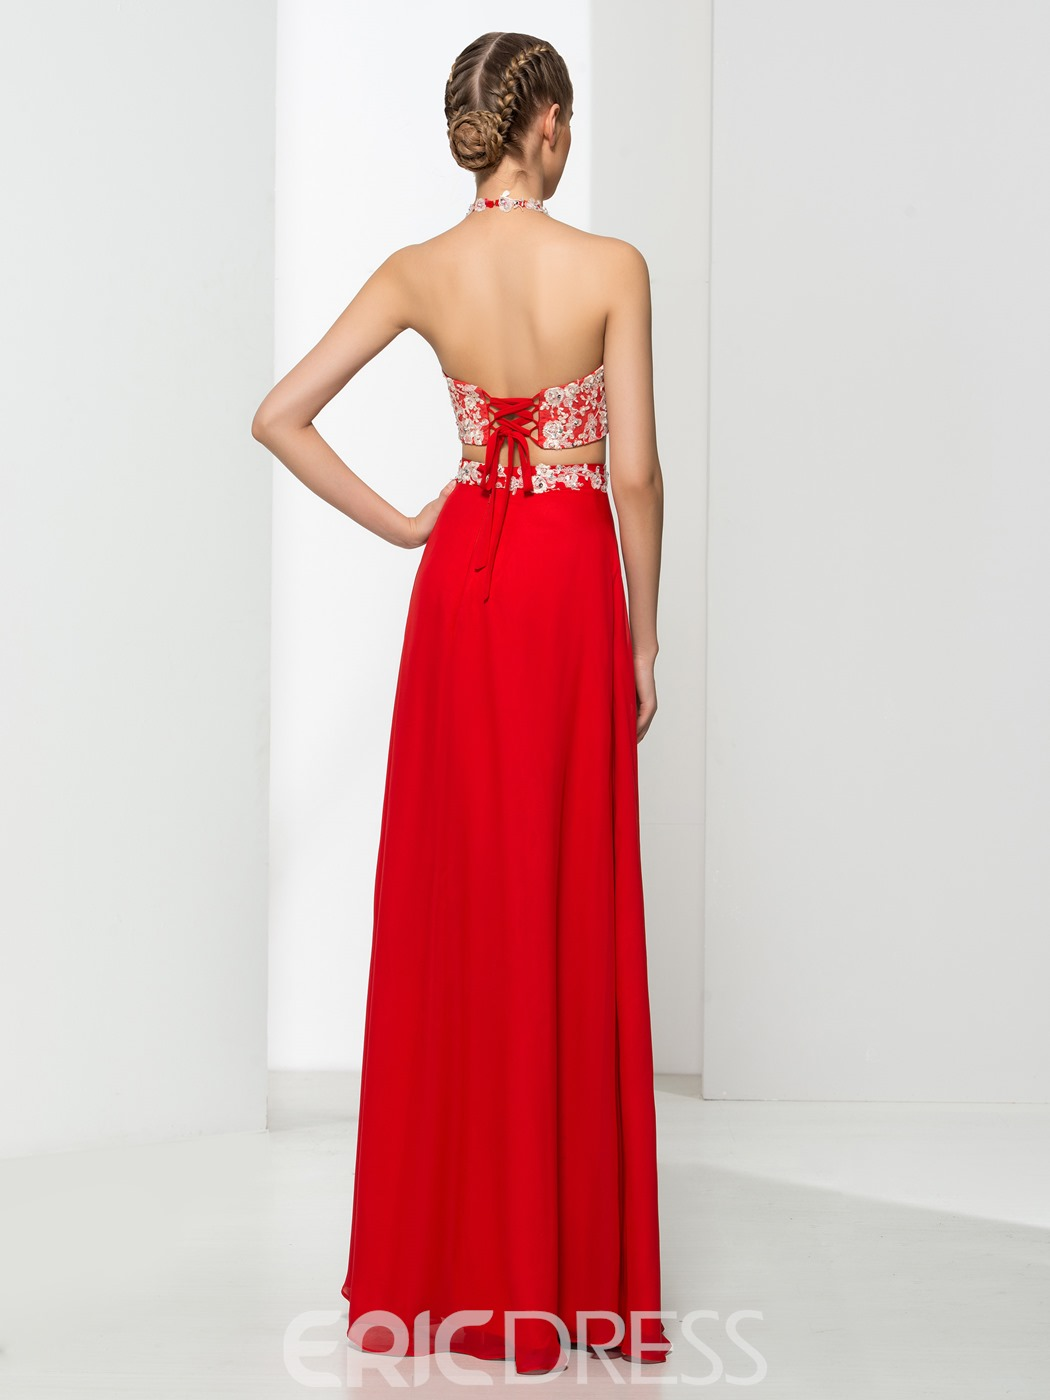 Ericdress Halter Two Pieces Appliques Sequins Red Prom Dress